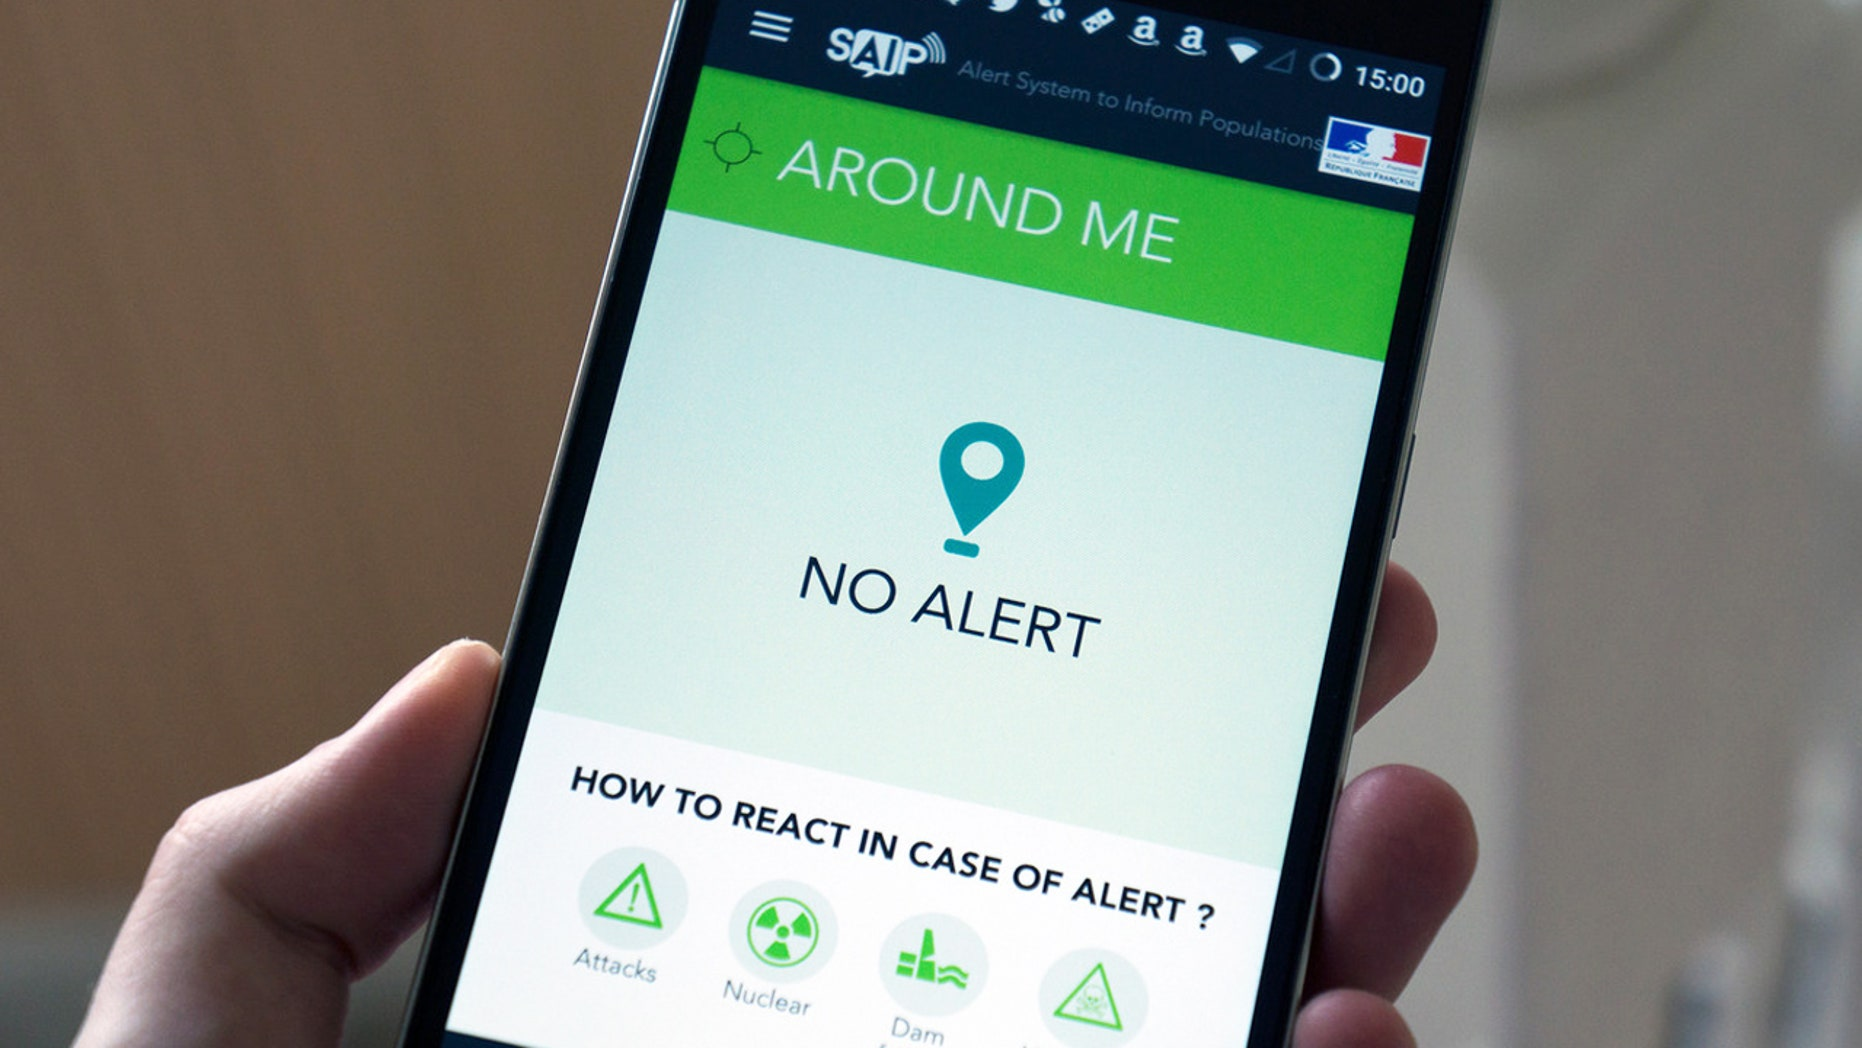 The French government's SAIP app will alert soccer fans to any safety tips and emergency information in French and English during Euro 2016.